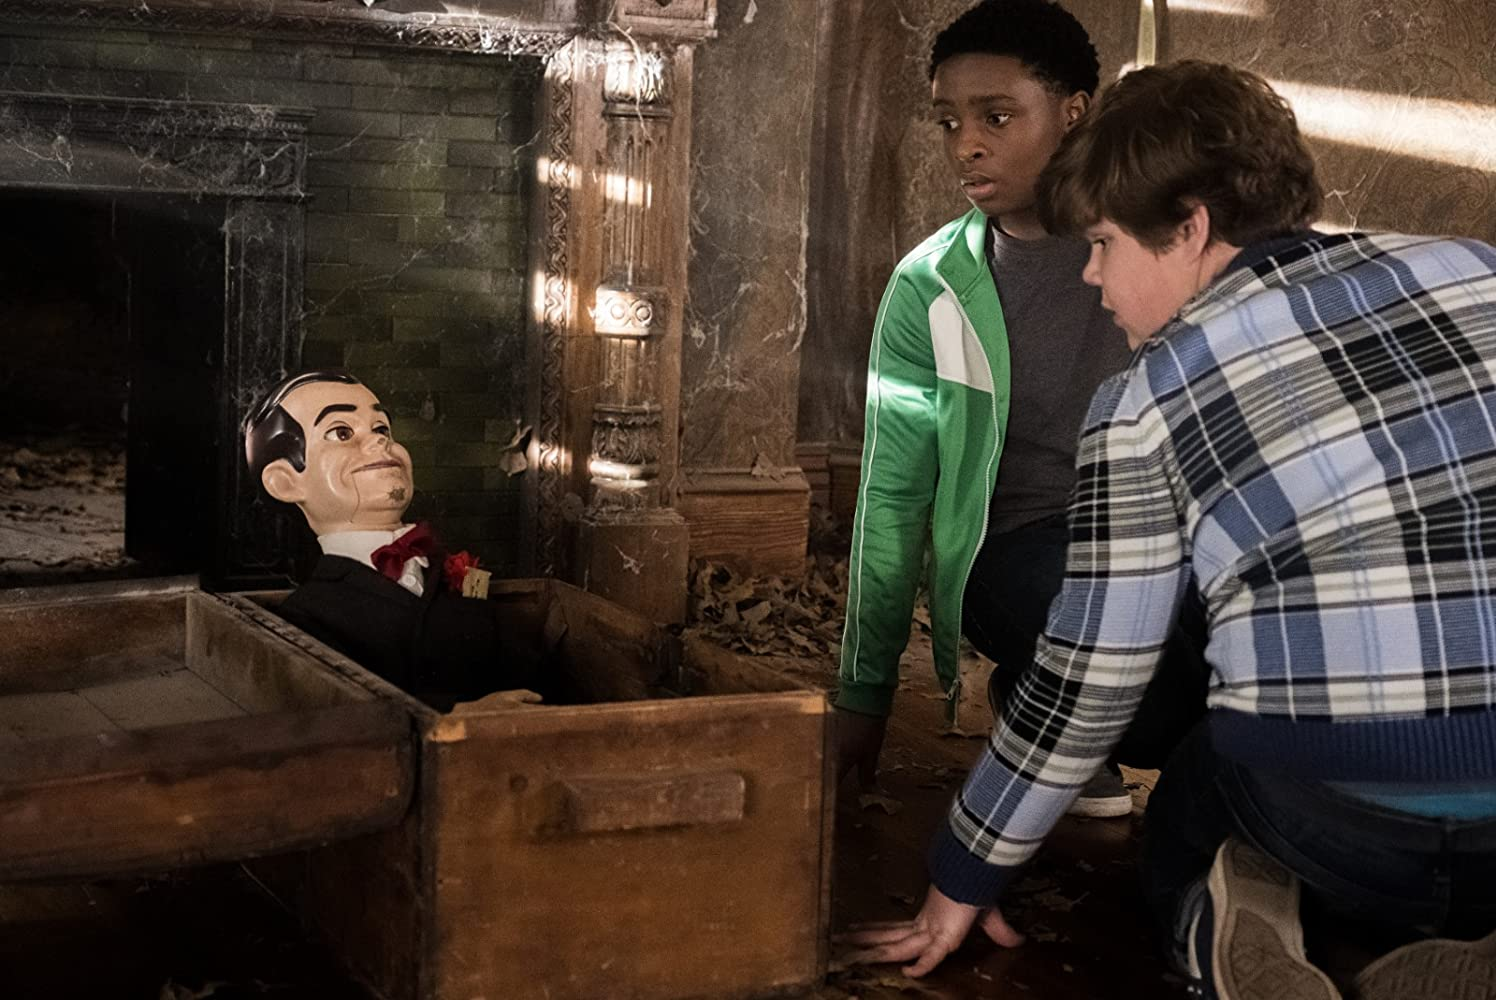 Mick Wingert, Caleel Harris, and Jeremy Ray Taylor in Goosebumps 2: Haunted Halloween (2018)